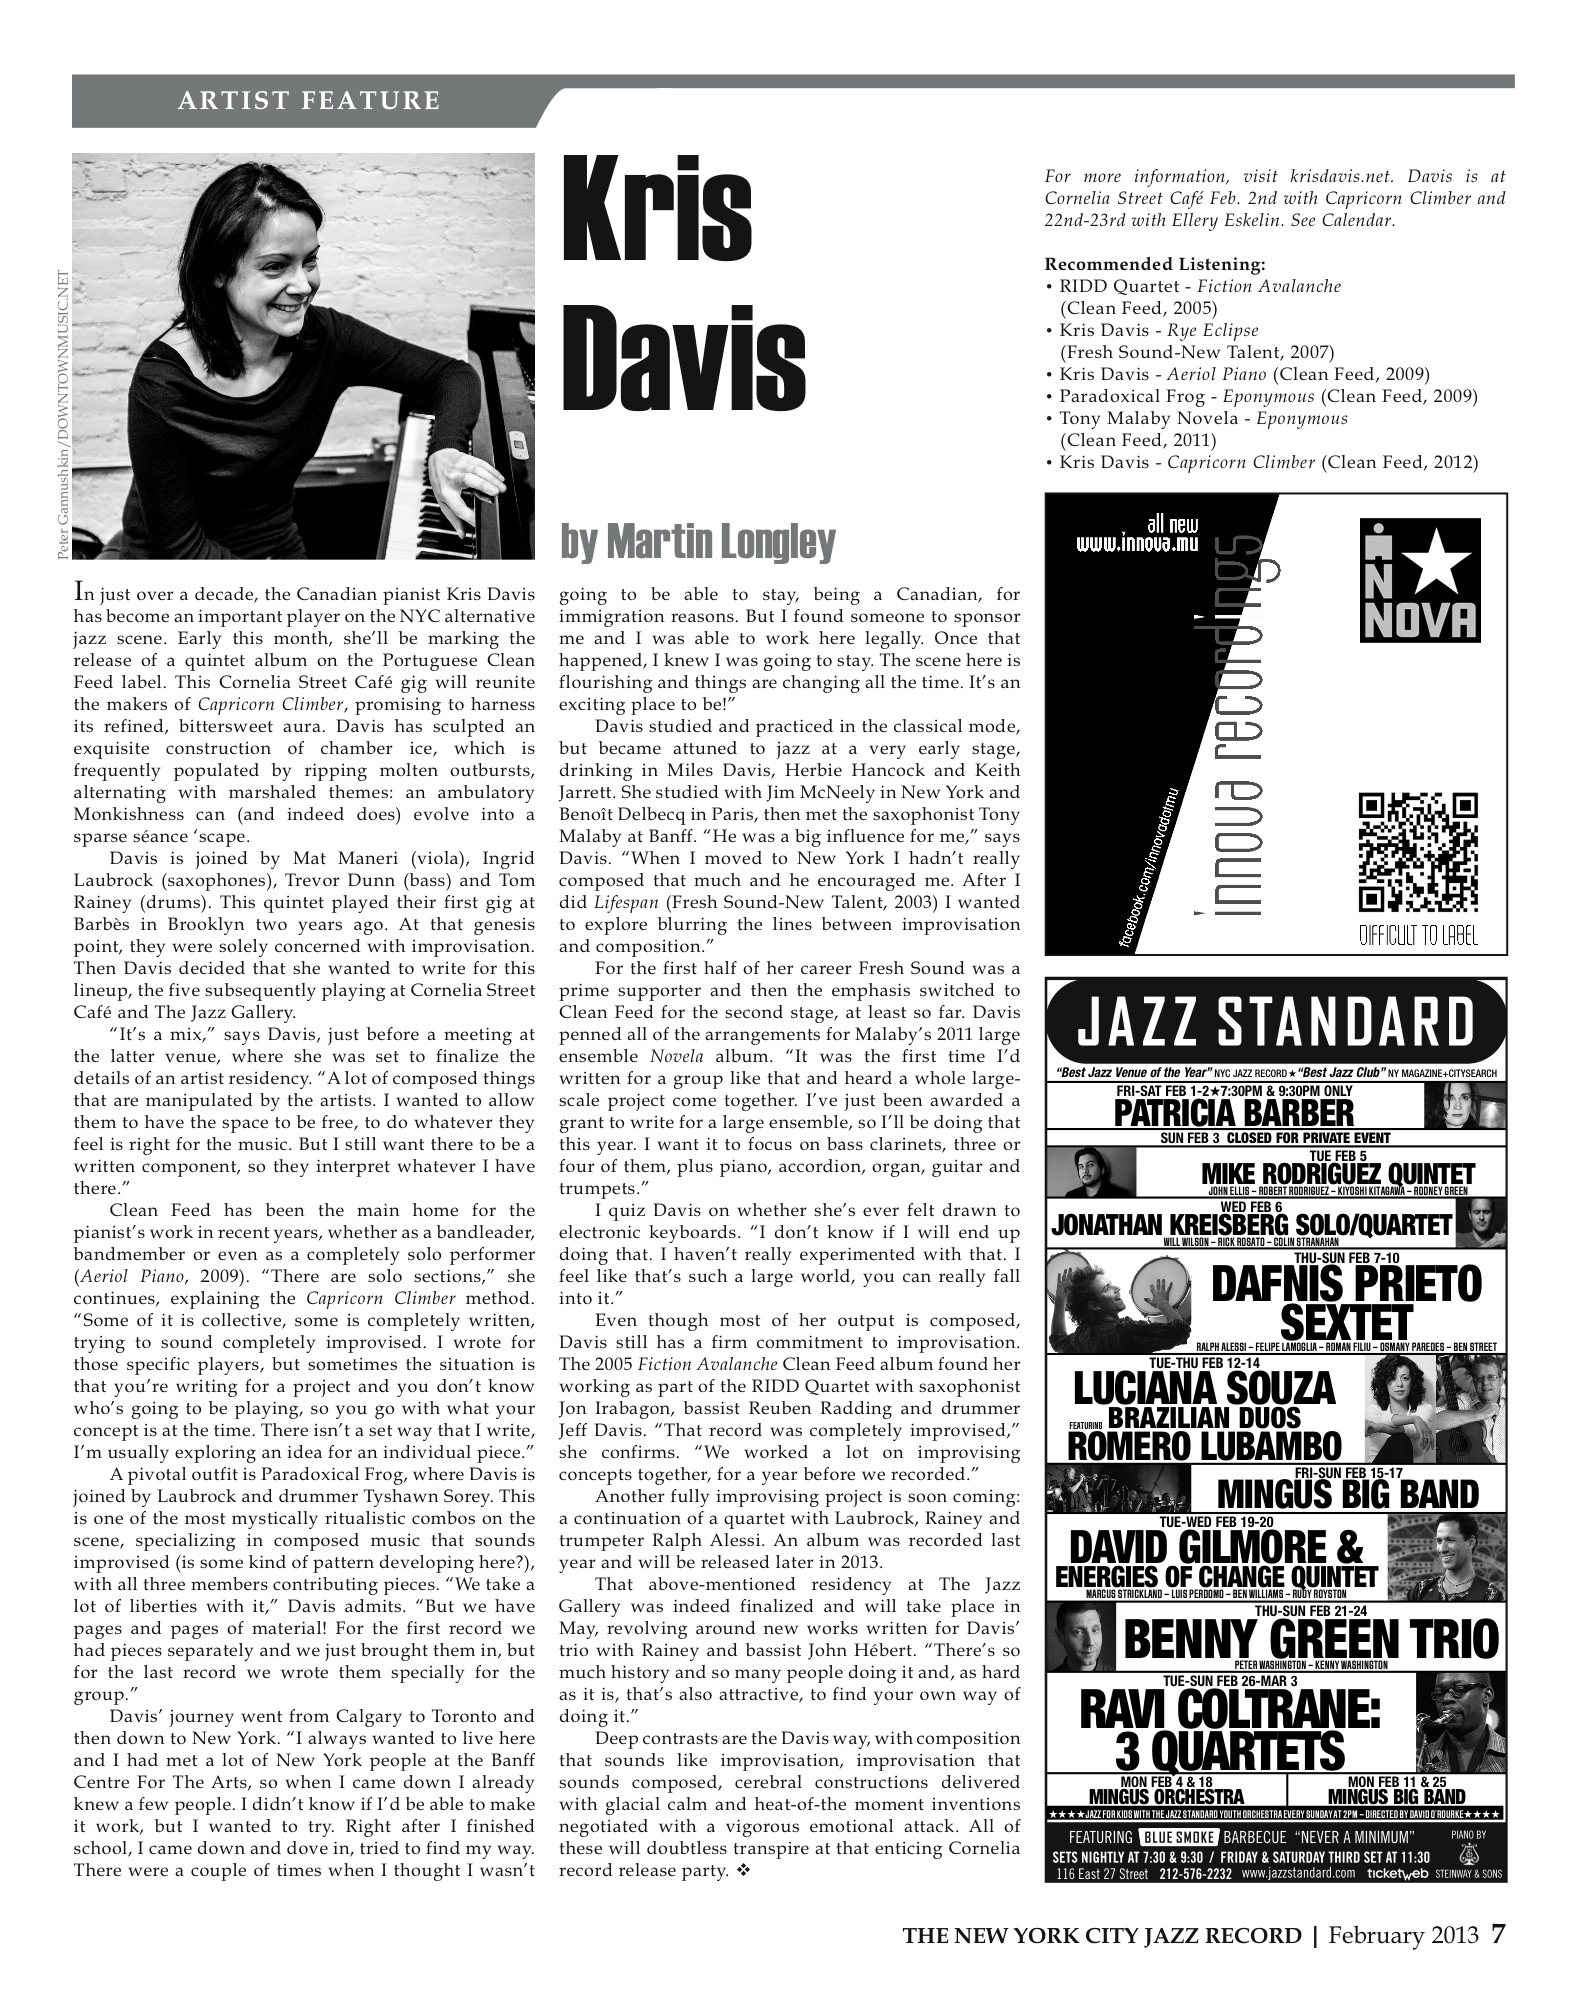 Feature in the New York Jazz Record this month